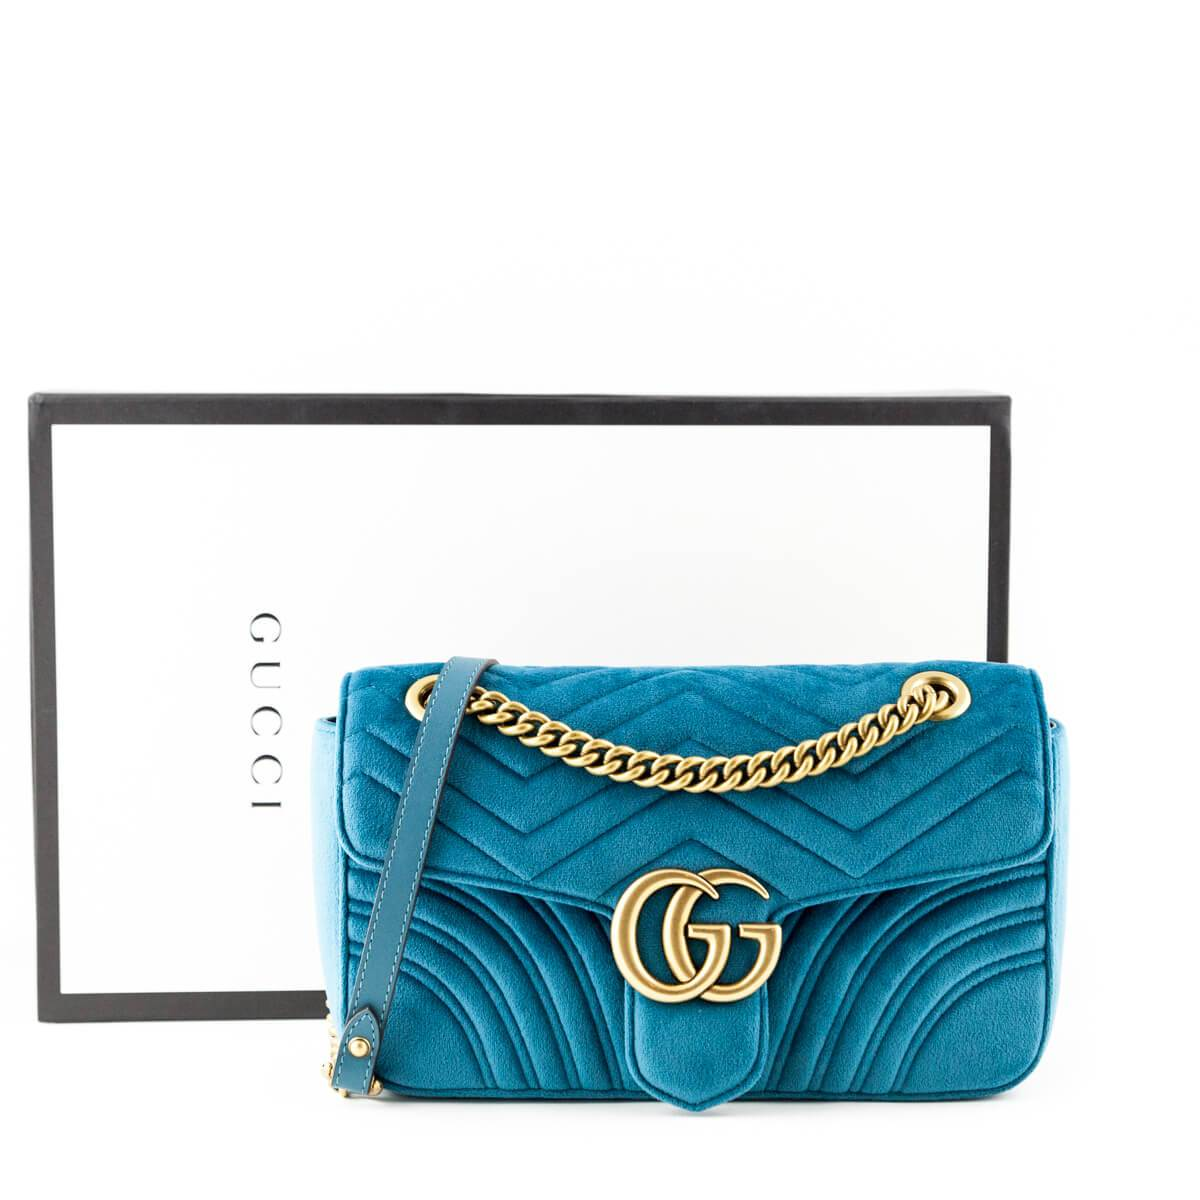 19e35981bcb2 ... Load image into Gallery viewer, Gucci Petrol Blue Velvet Small GG  Marmont Shoulder Bag ...